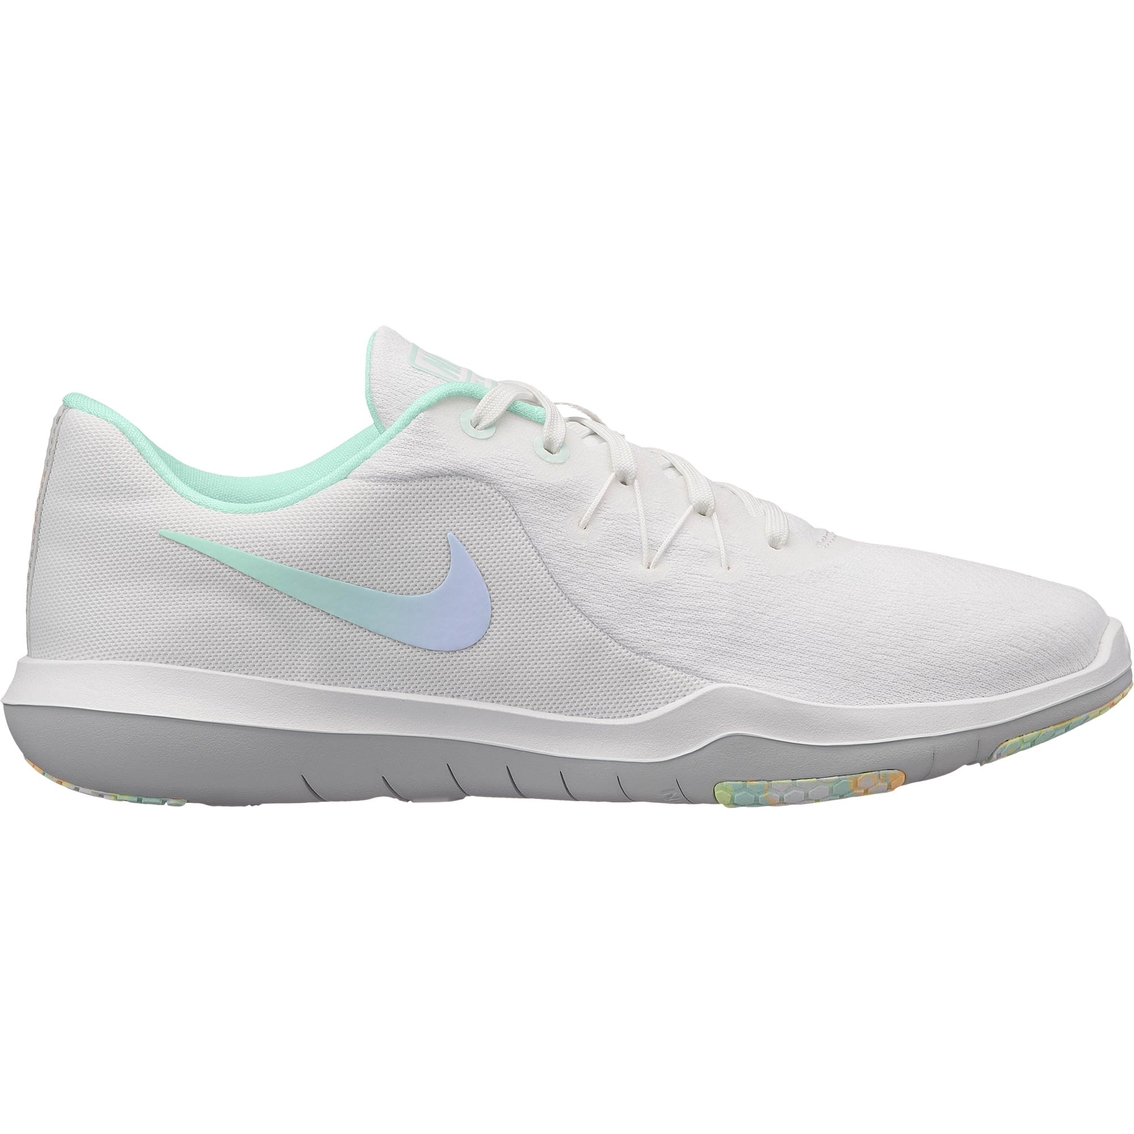 01661d6753aa Nike Women s Flex Supreme Tr 6 Training Shoes